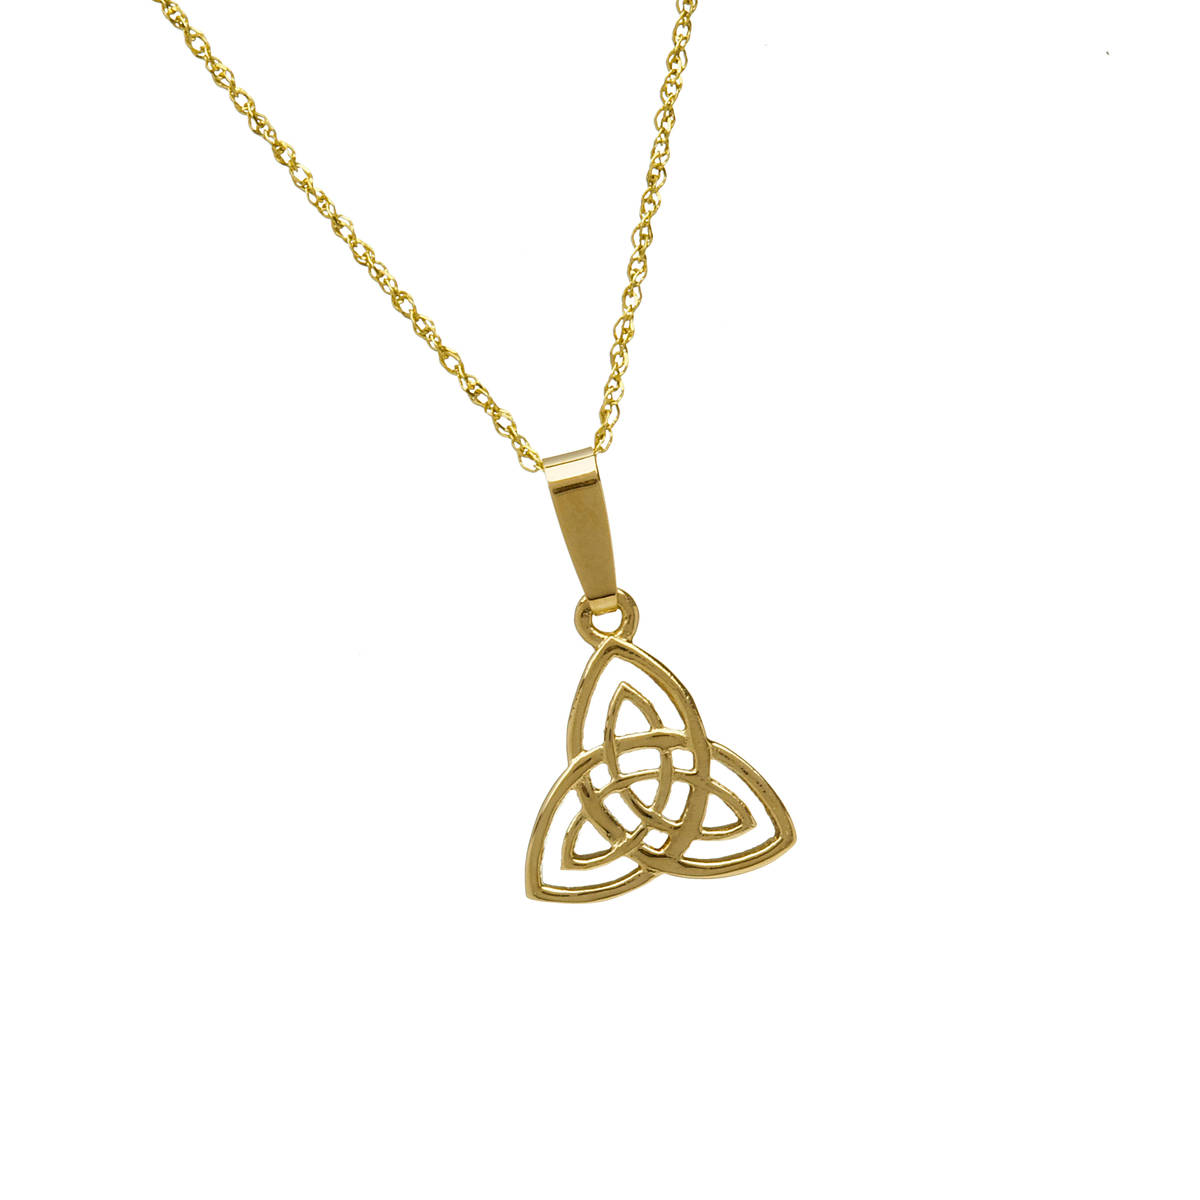 "10ct Trinity Knot Pendant 18"" Chain  Based on the trinity knot which originates from ancient manuscripts and signifies the undying nature of love and friendship."